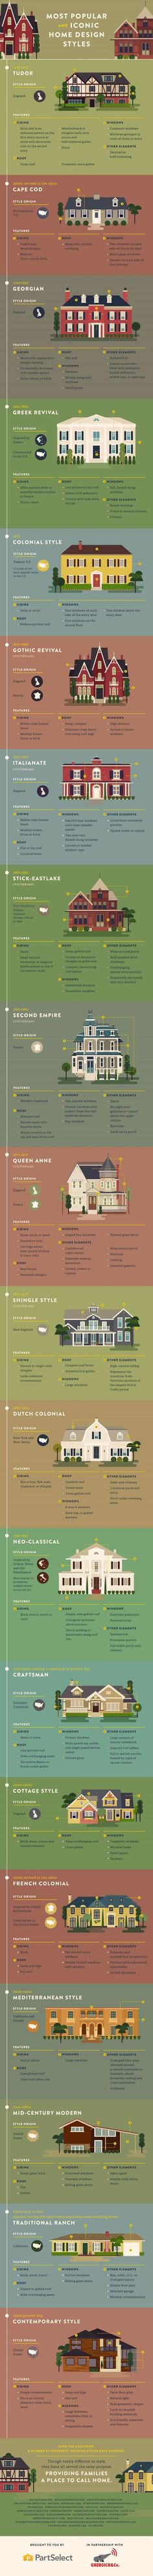 Do You Know the Most Popular Home Styles? http://realtormag.realtor.org/daily-news/2016/08/18/do-you-know-most-popular-home-styles#sf33729578